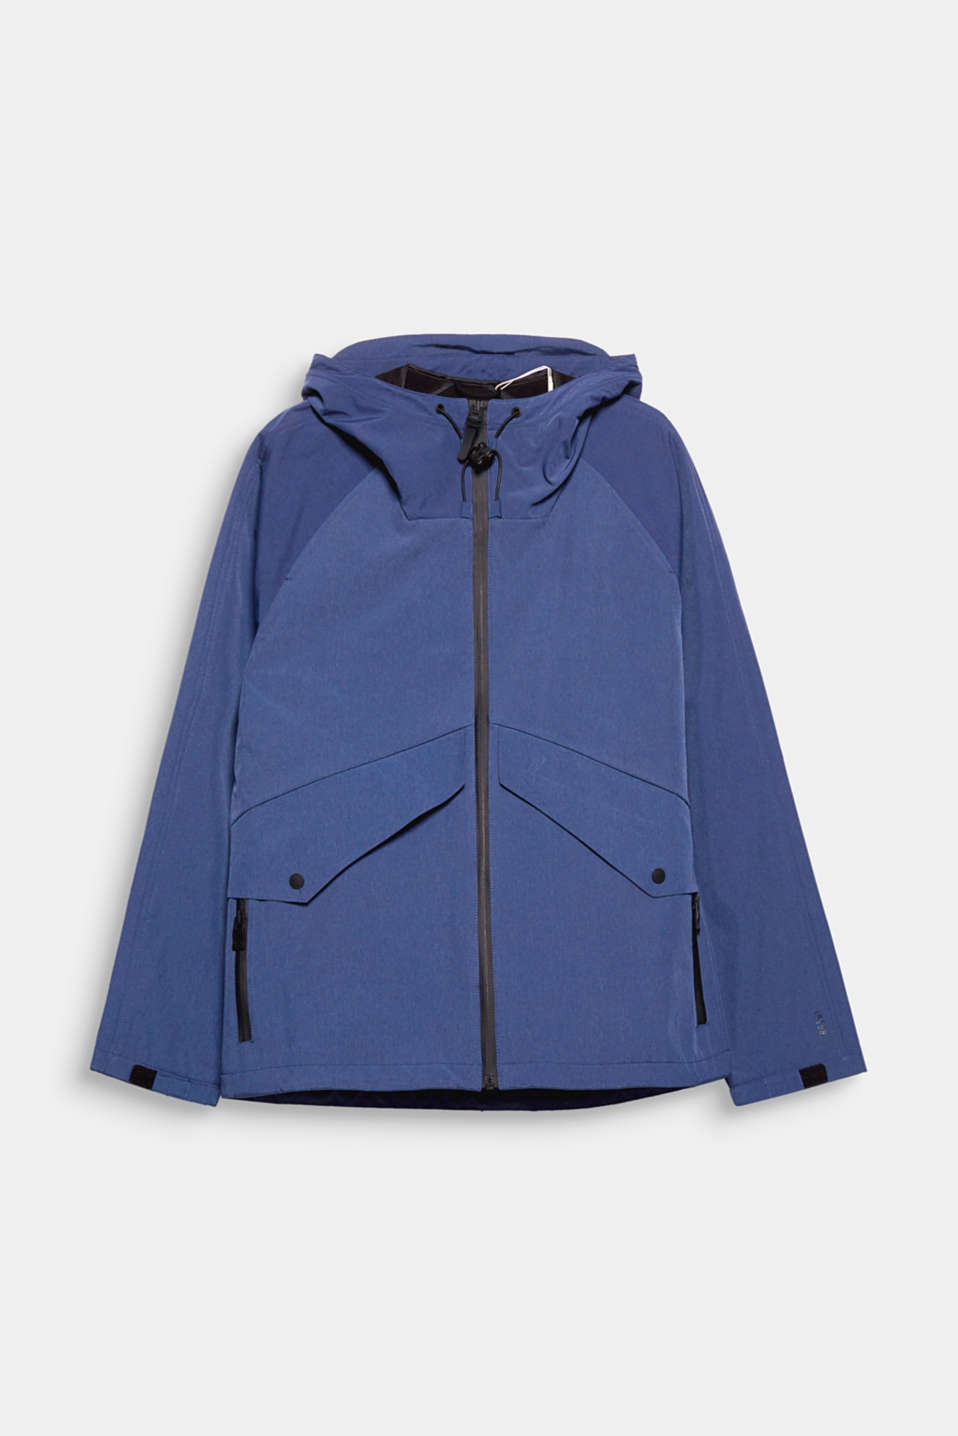 For windy and inclement weather! The hood and fleece lining make this sporty trans-seasonal jacket a functional piece.